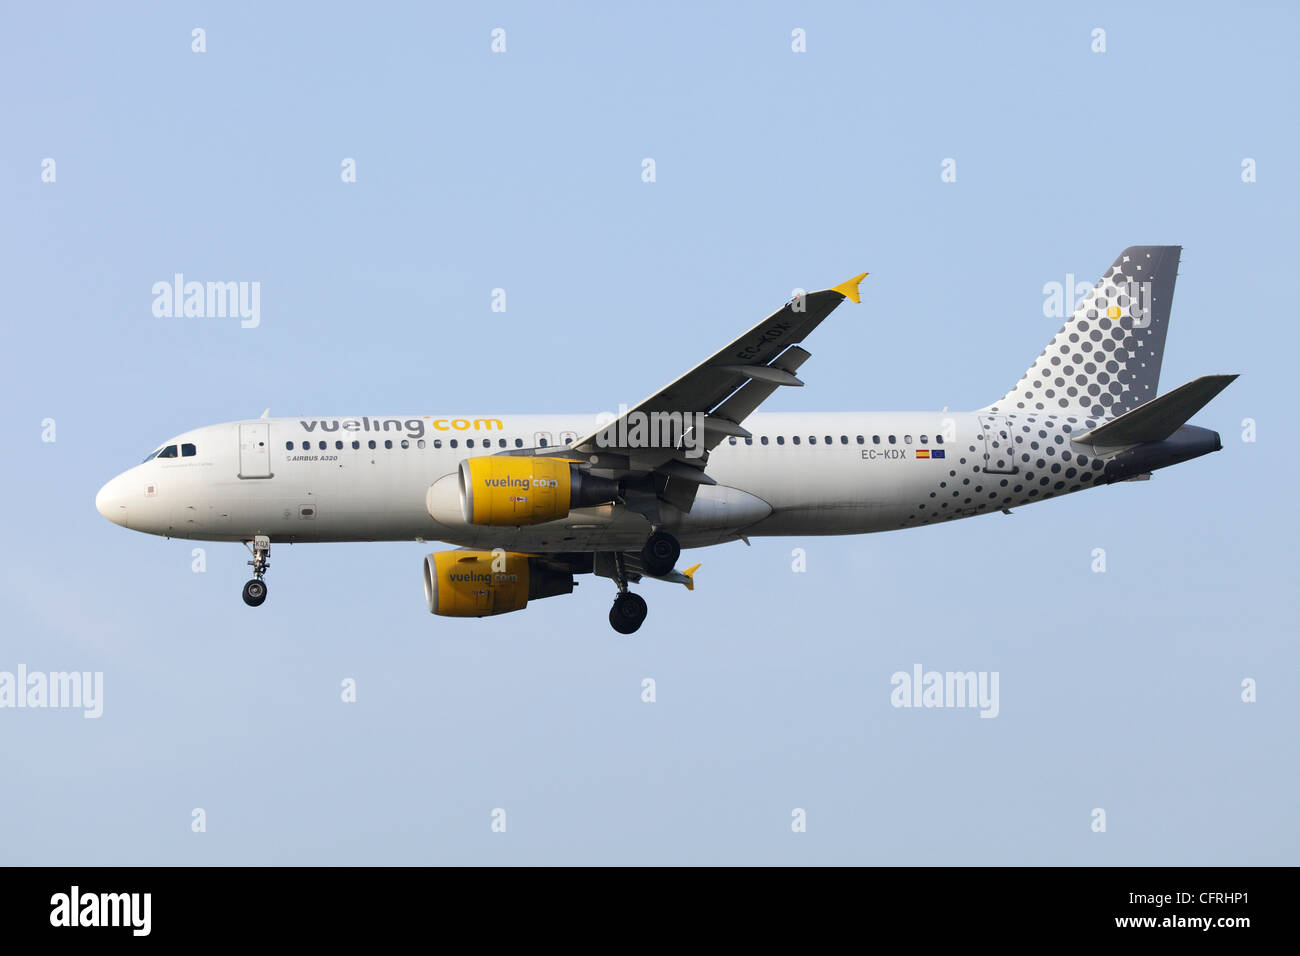 Vueling Airbus A320 EC-KDX on approach to Heathrow - Stock Image